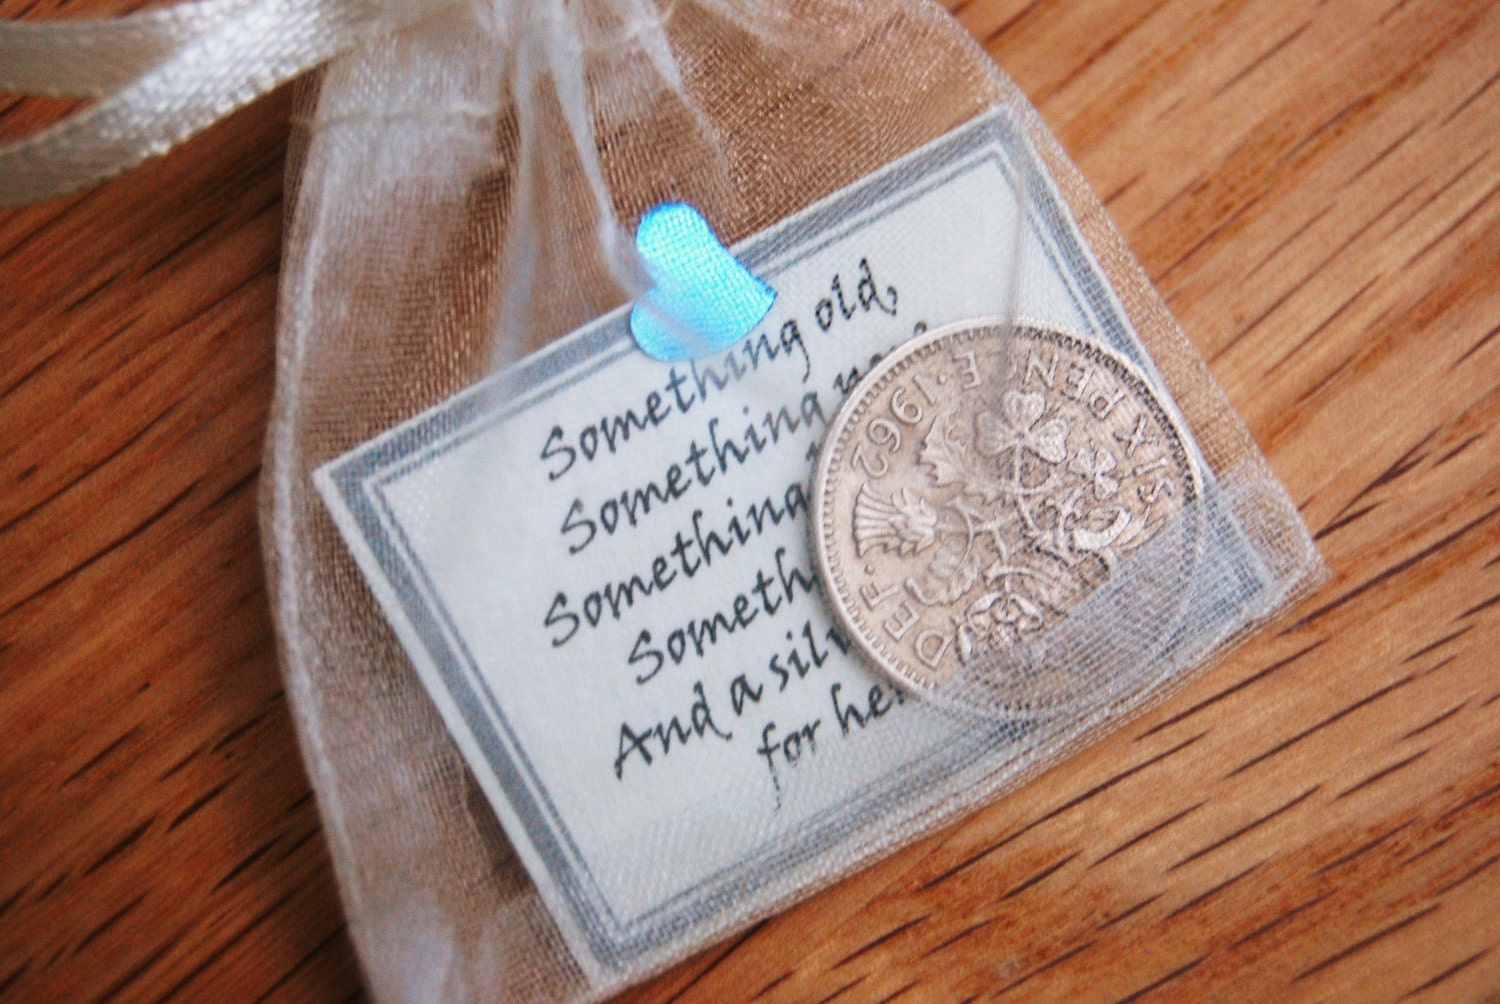 Goodluck Daughter Wedding Gift : Lucky sixpence bridal gift something blue traditional good luck charm